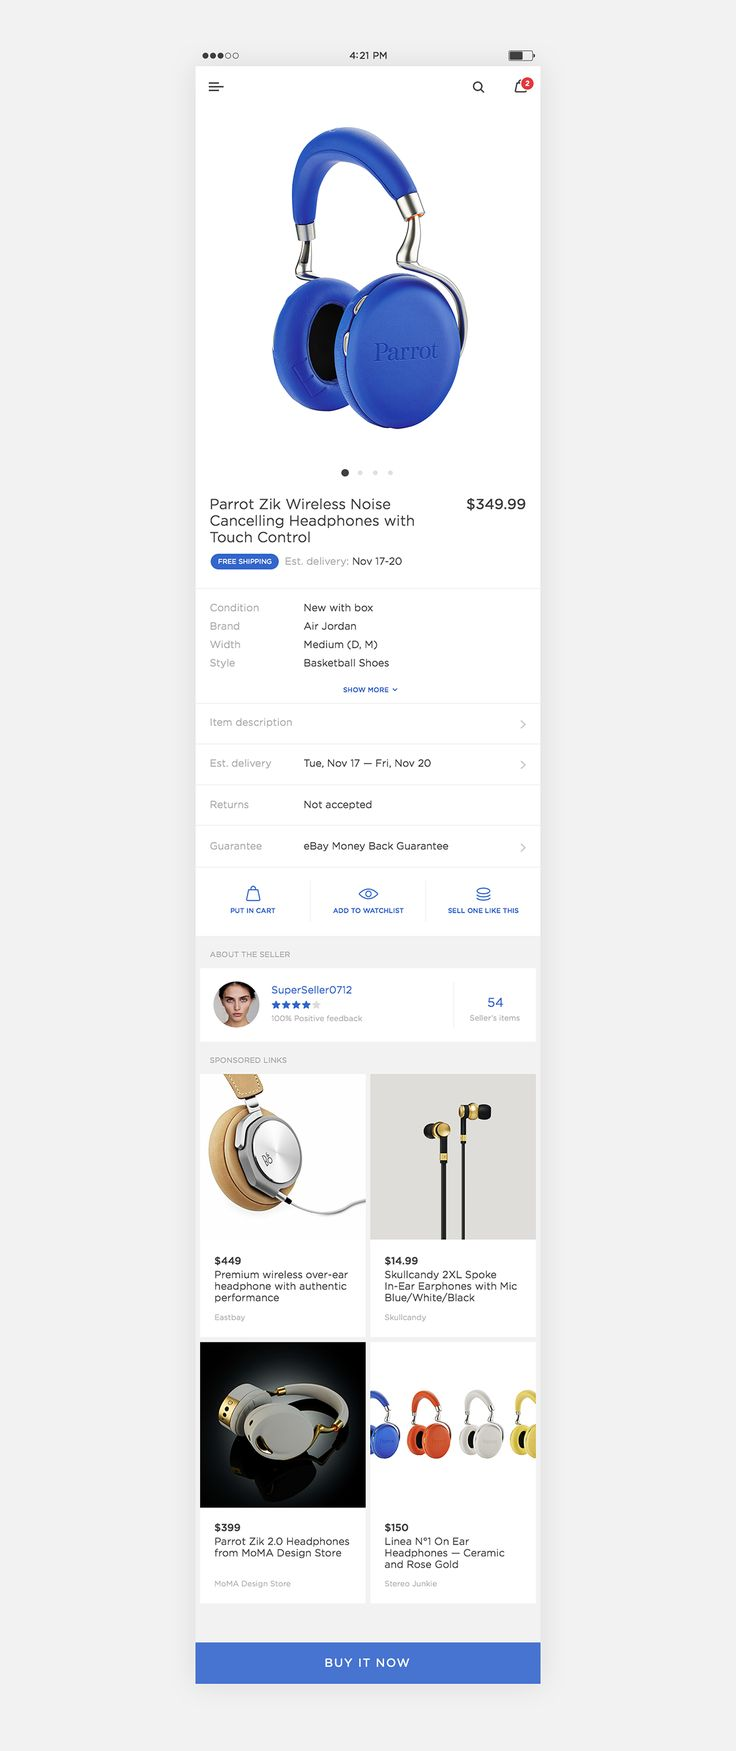 I have spent a day to come up with a refined version of two screens from eBay's mobile app. Feel free to comment and share your thoughts!